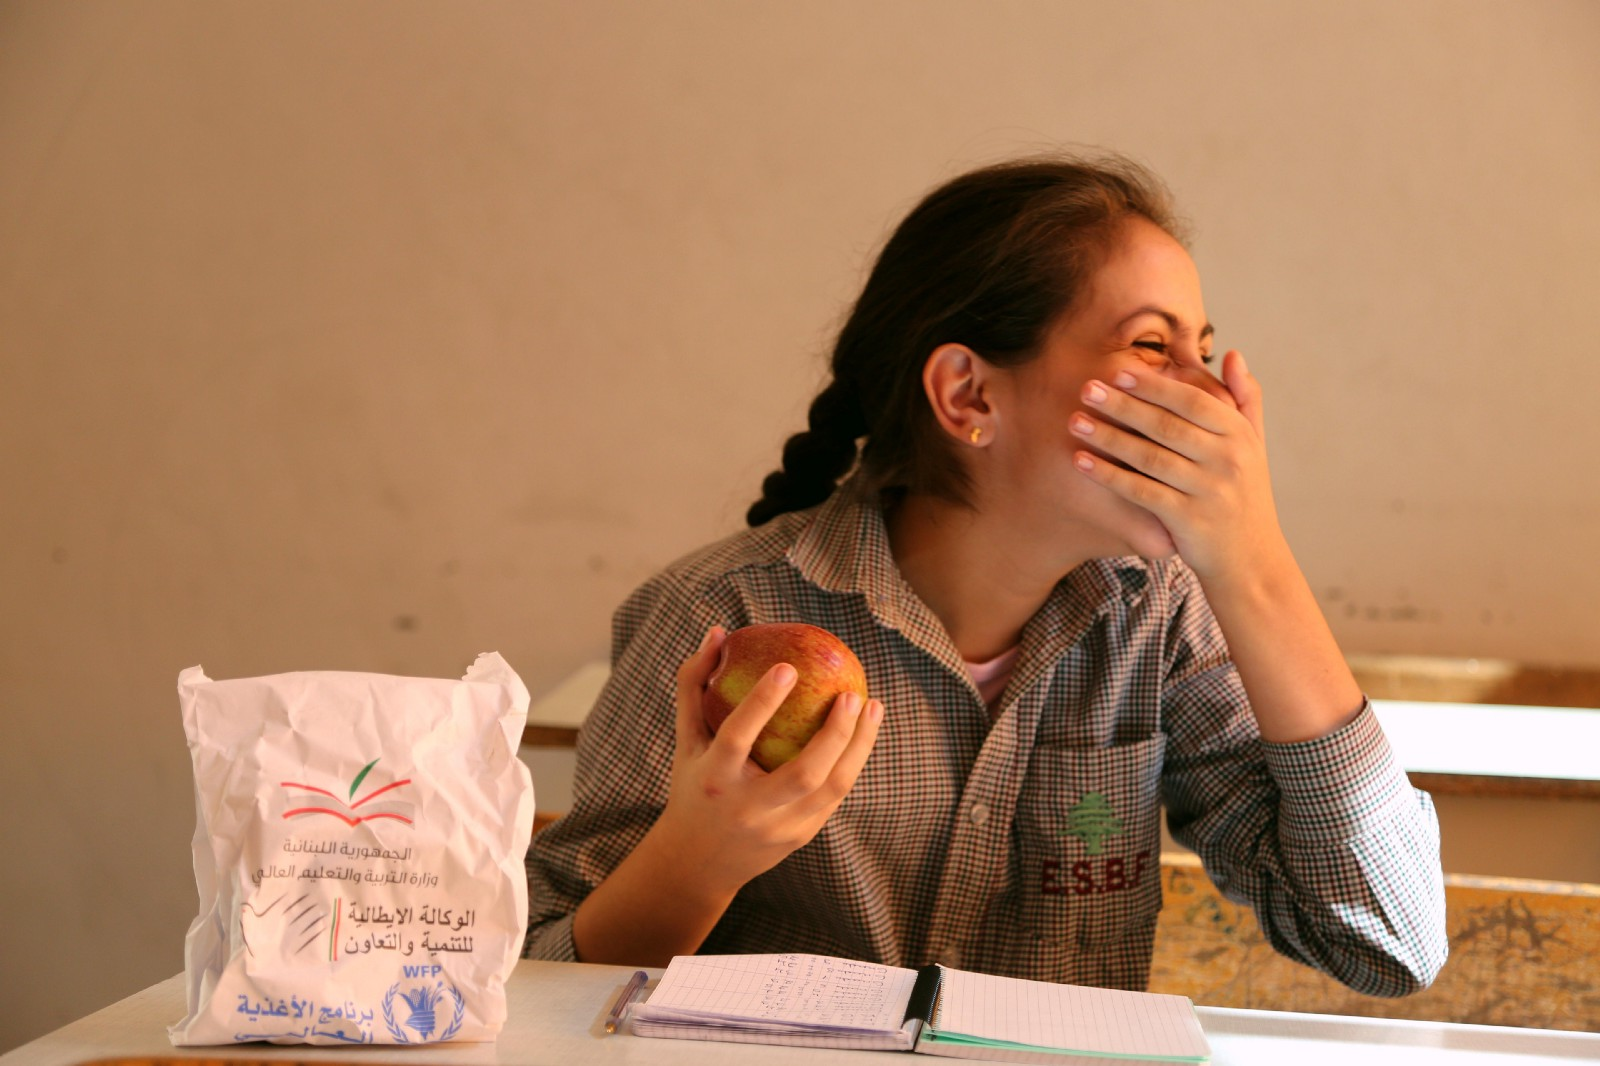 Karla takes an apple from her school meal bag and covers her mouth as she laughs